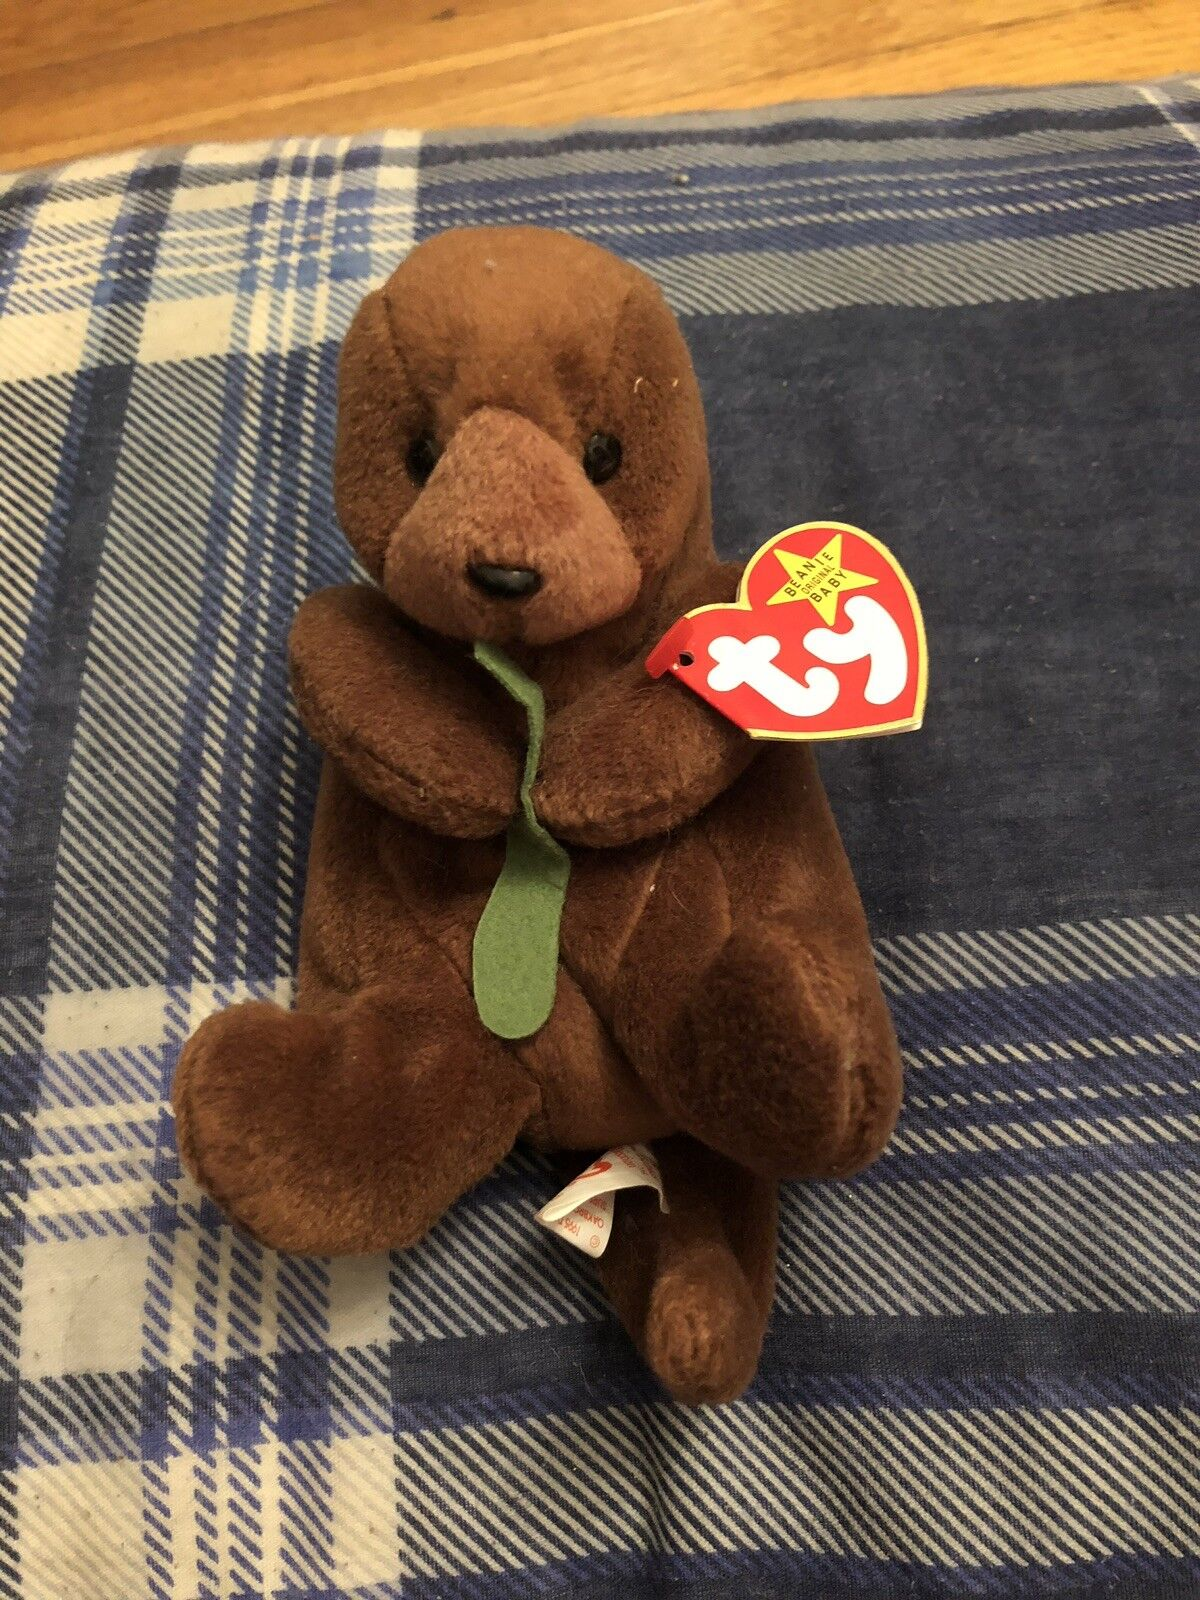 Seaweed TY Beanie Baby With Errors